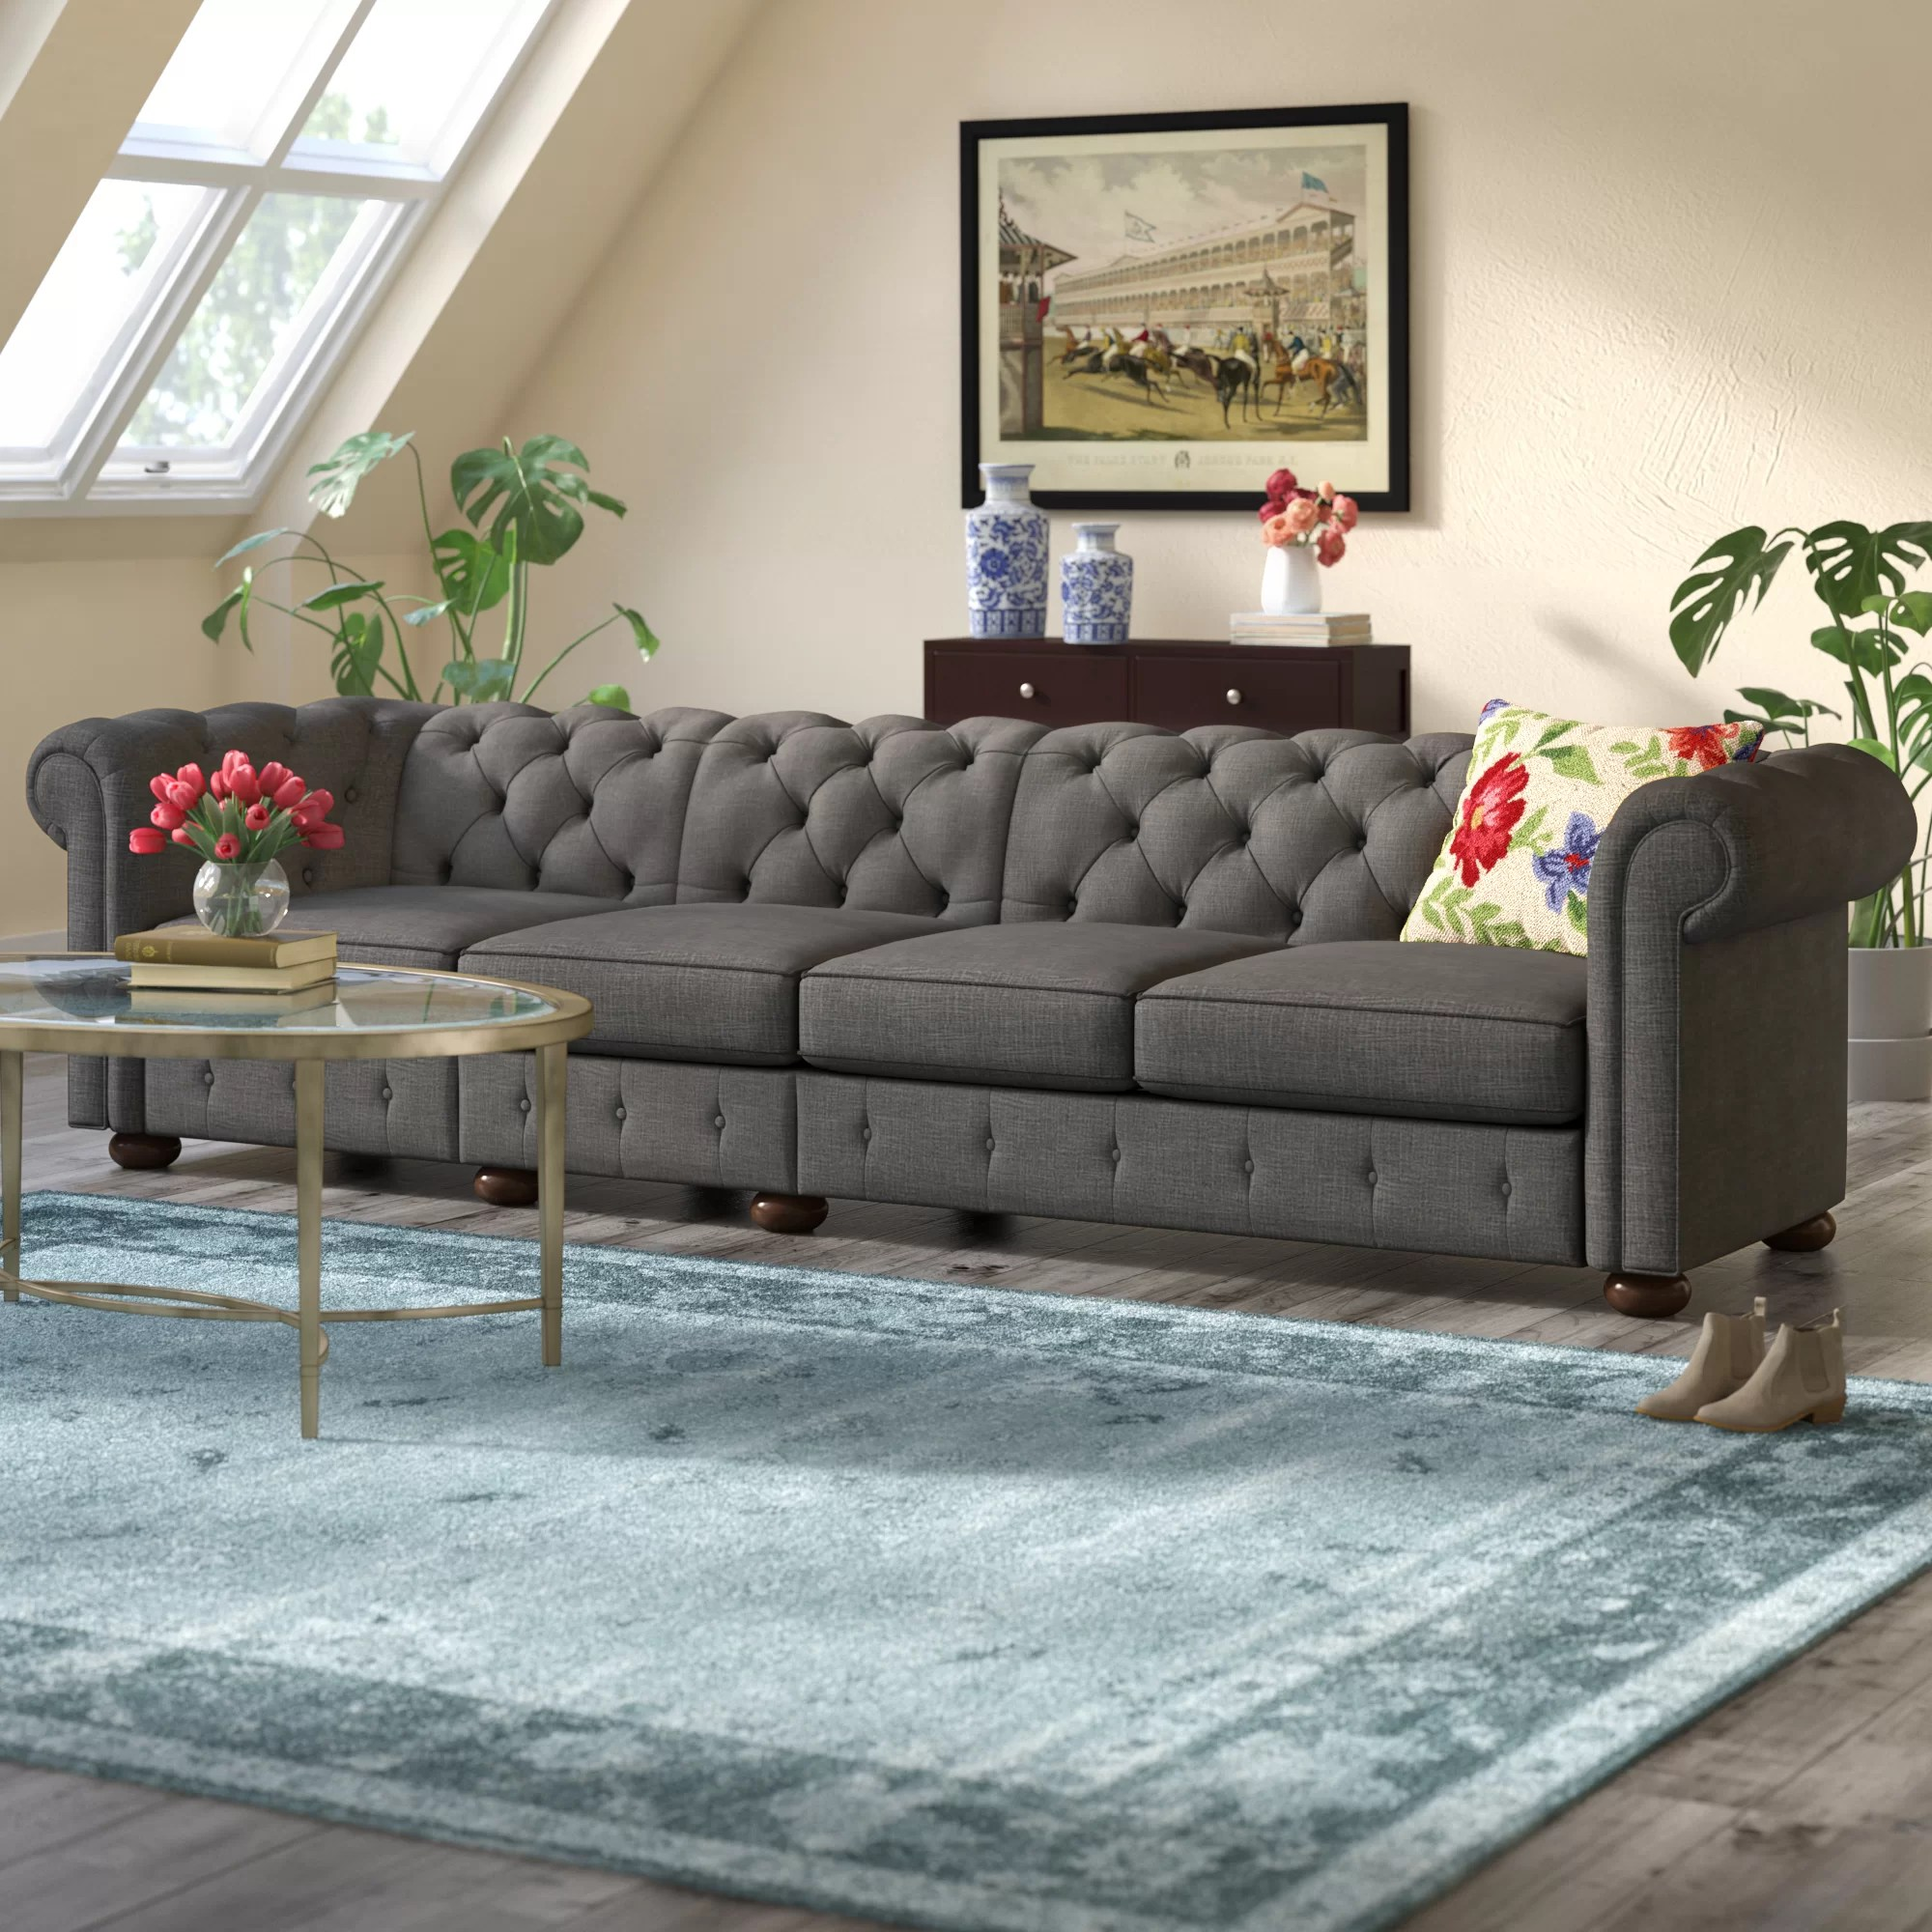 Sofa Couch Or Chesterfield Gowans Chesterfield Sofa